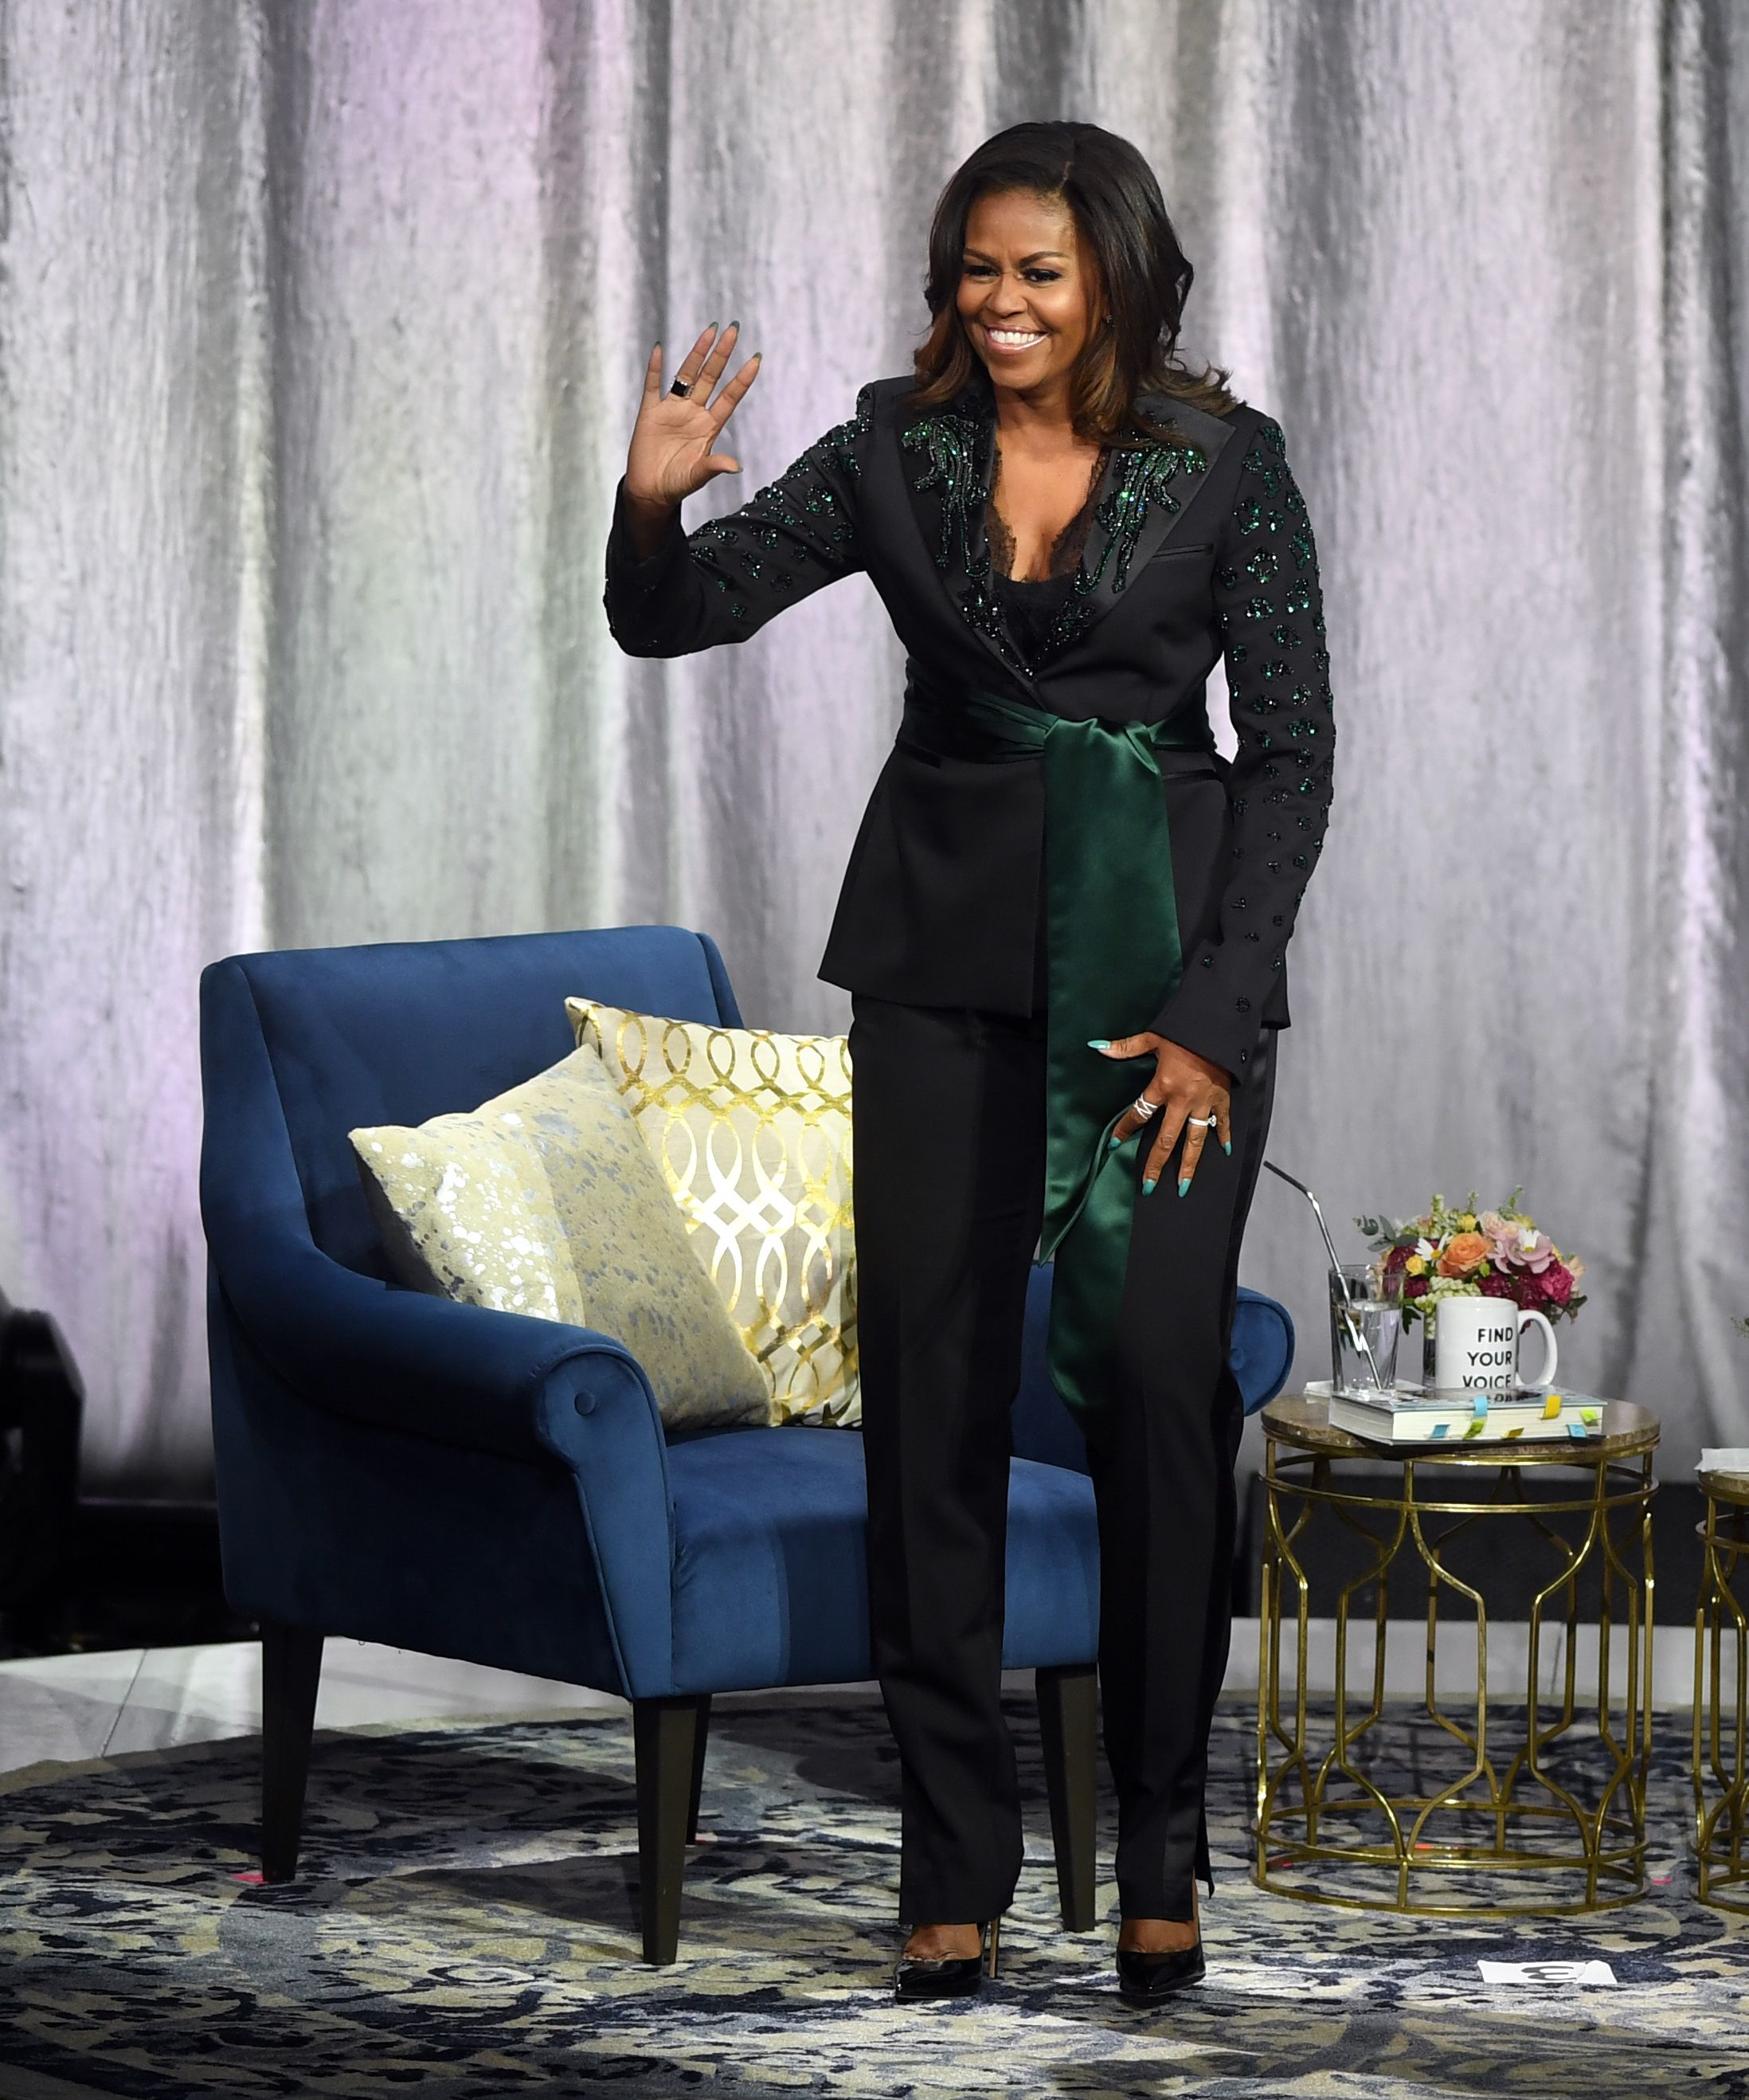 fc0d18b8412 Michelle Obama s Best Looks - Michelle Obama Style Fashion and Outfits